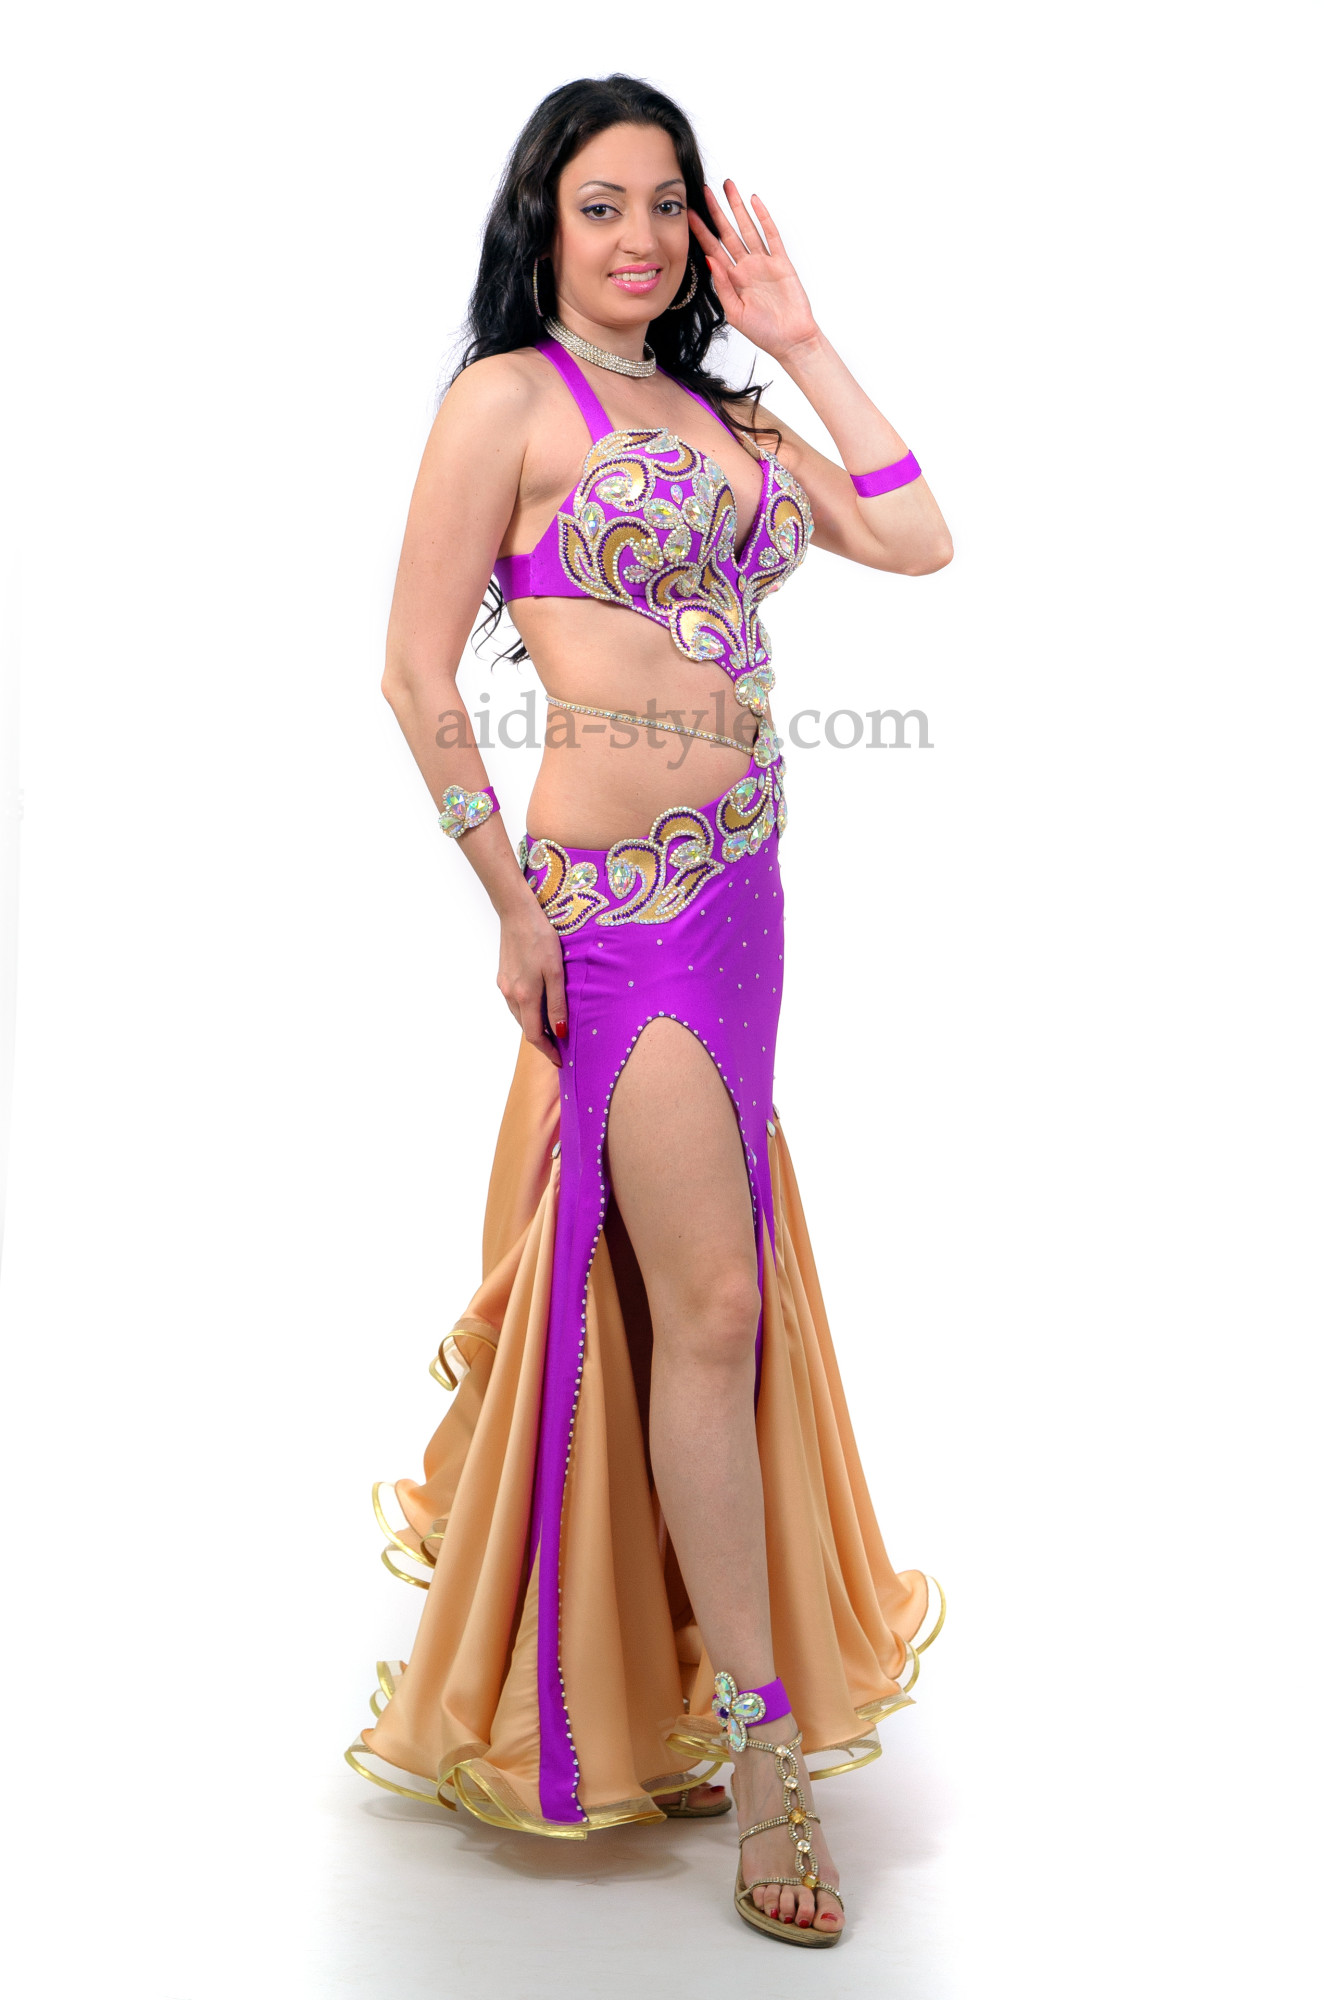 Professional belly dance dress in violet color and with a rich decoration from stones. It has a cut on the right side